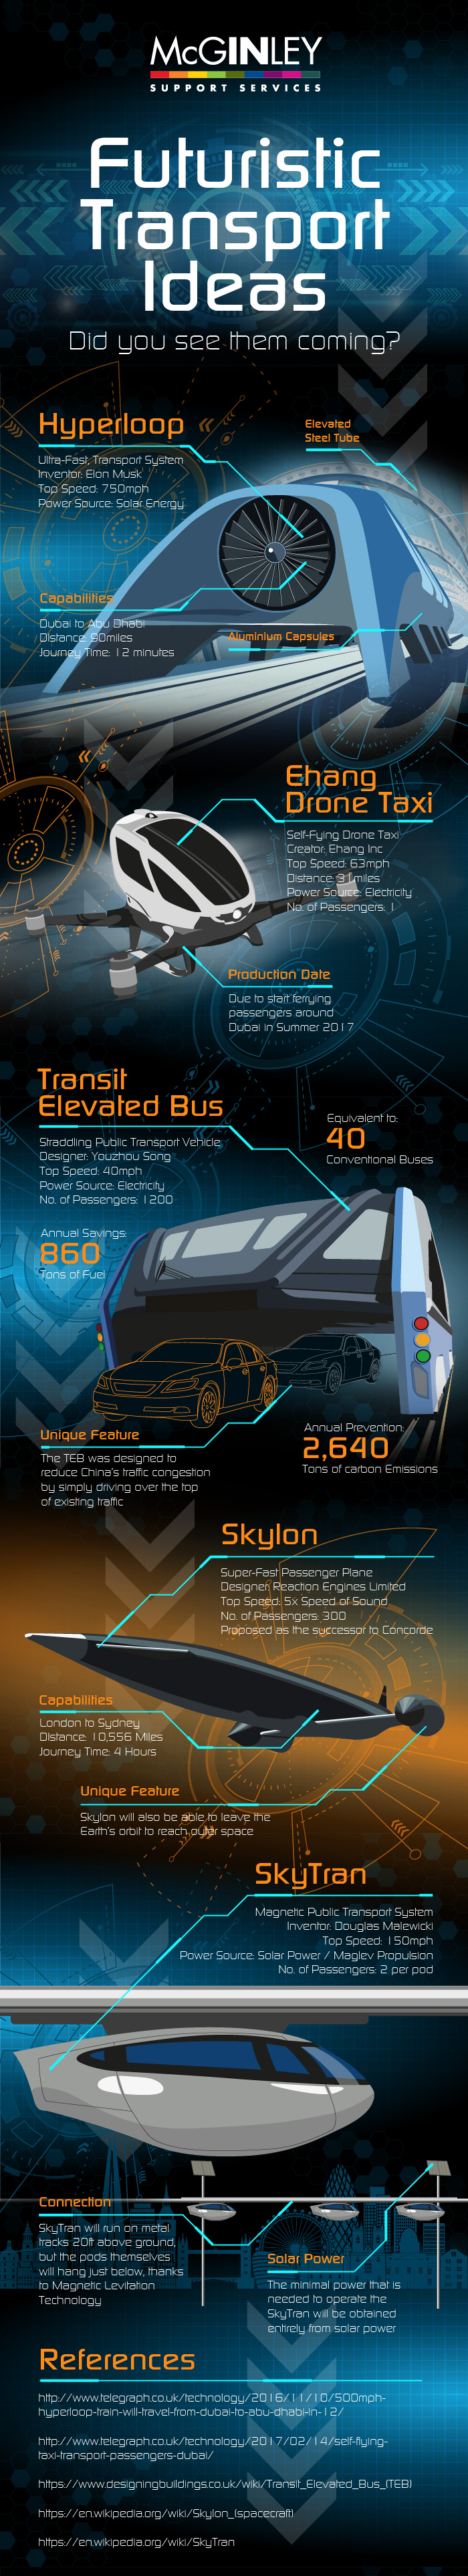 Futuristic Transport Ideas by McGinley Support Services